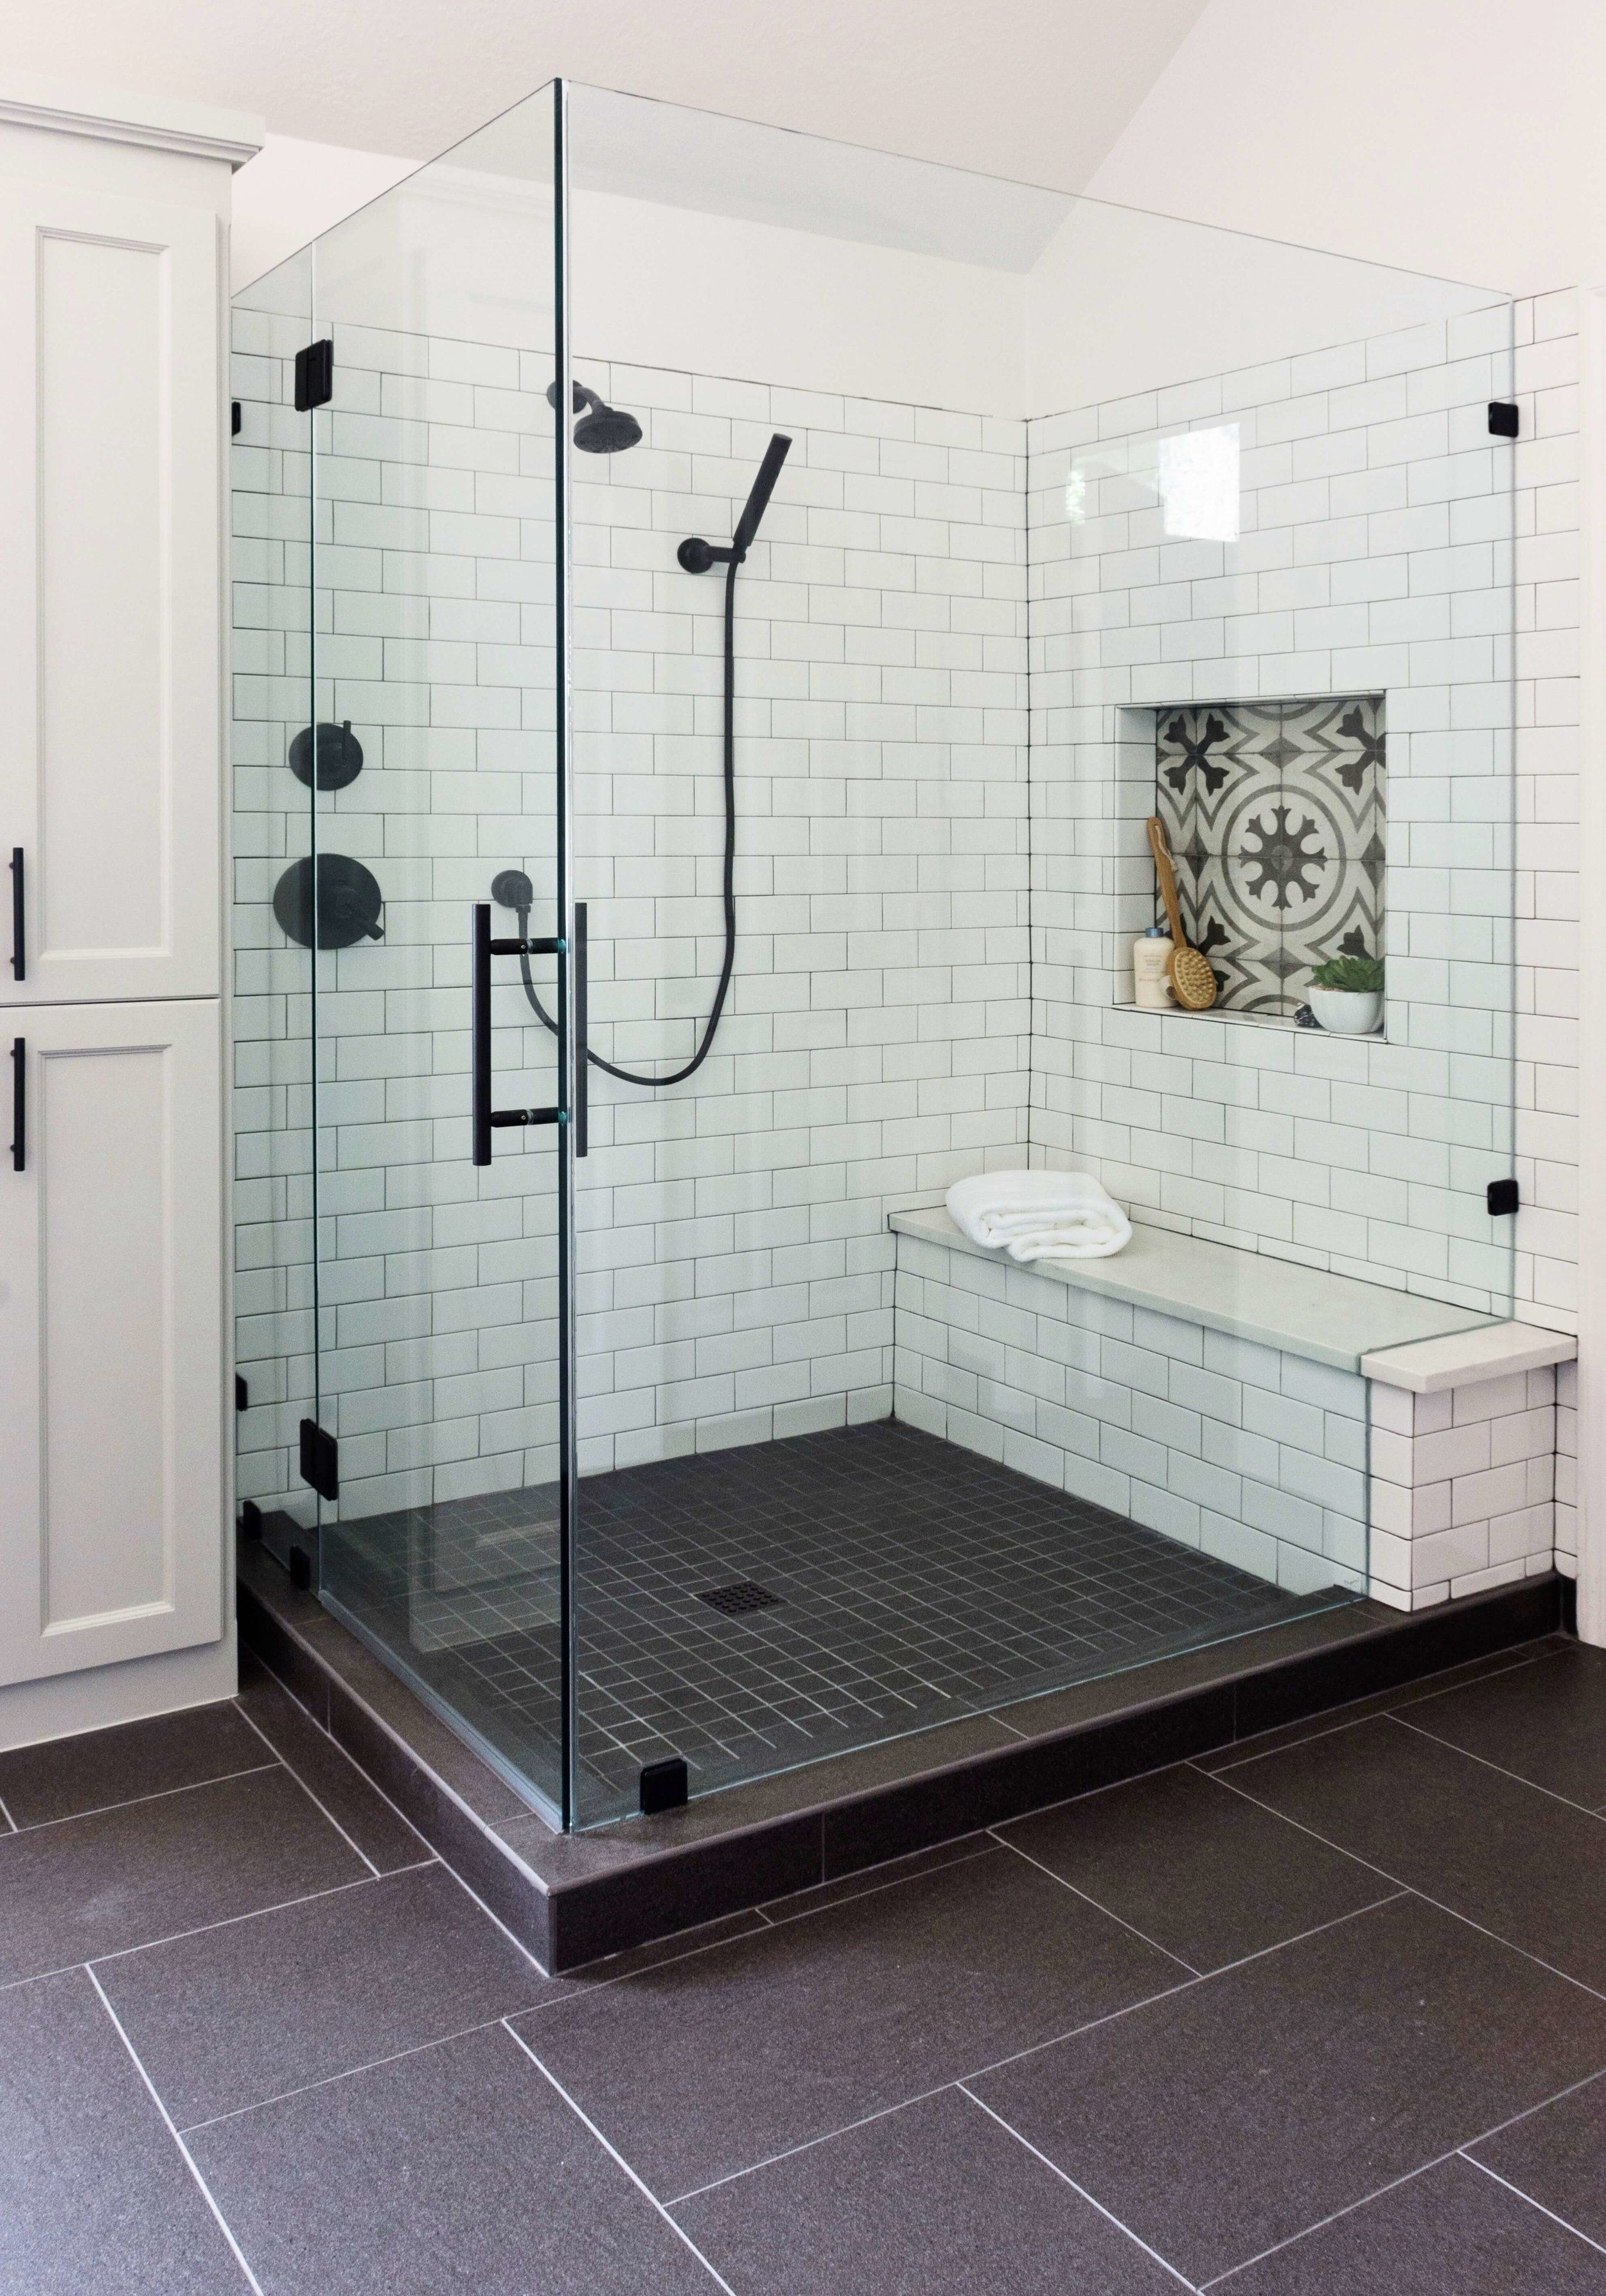 Before And After A Dated Builder Bathroom Becomes An Eye Catching Modern Retreat Designed Bathroom Remodel Designs Bathroom Remodel Master Small Bathroom Remodel